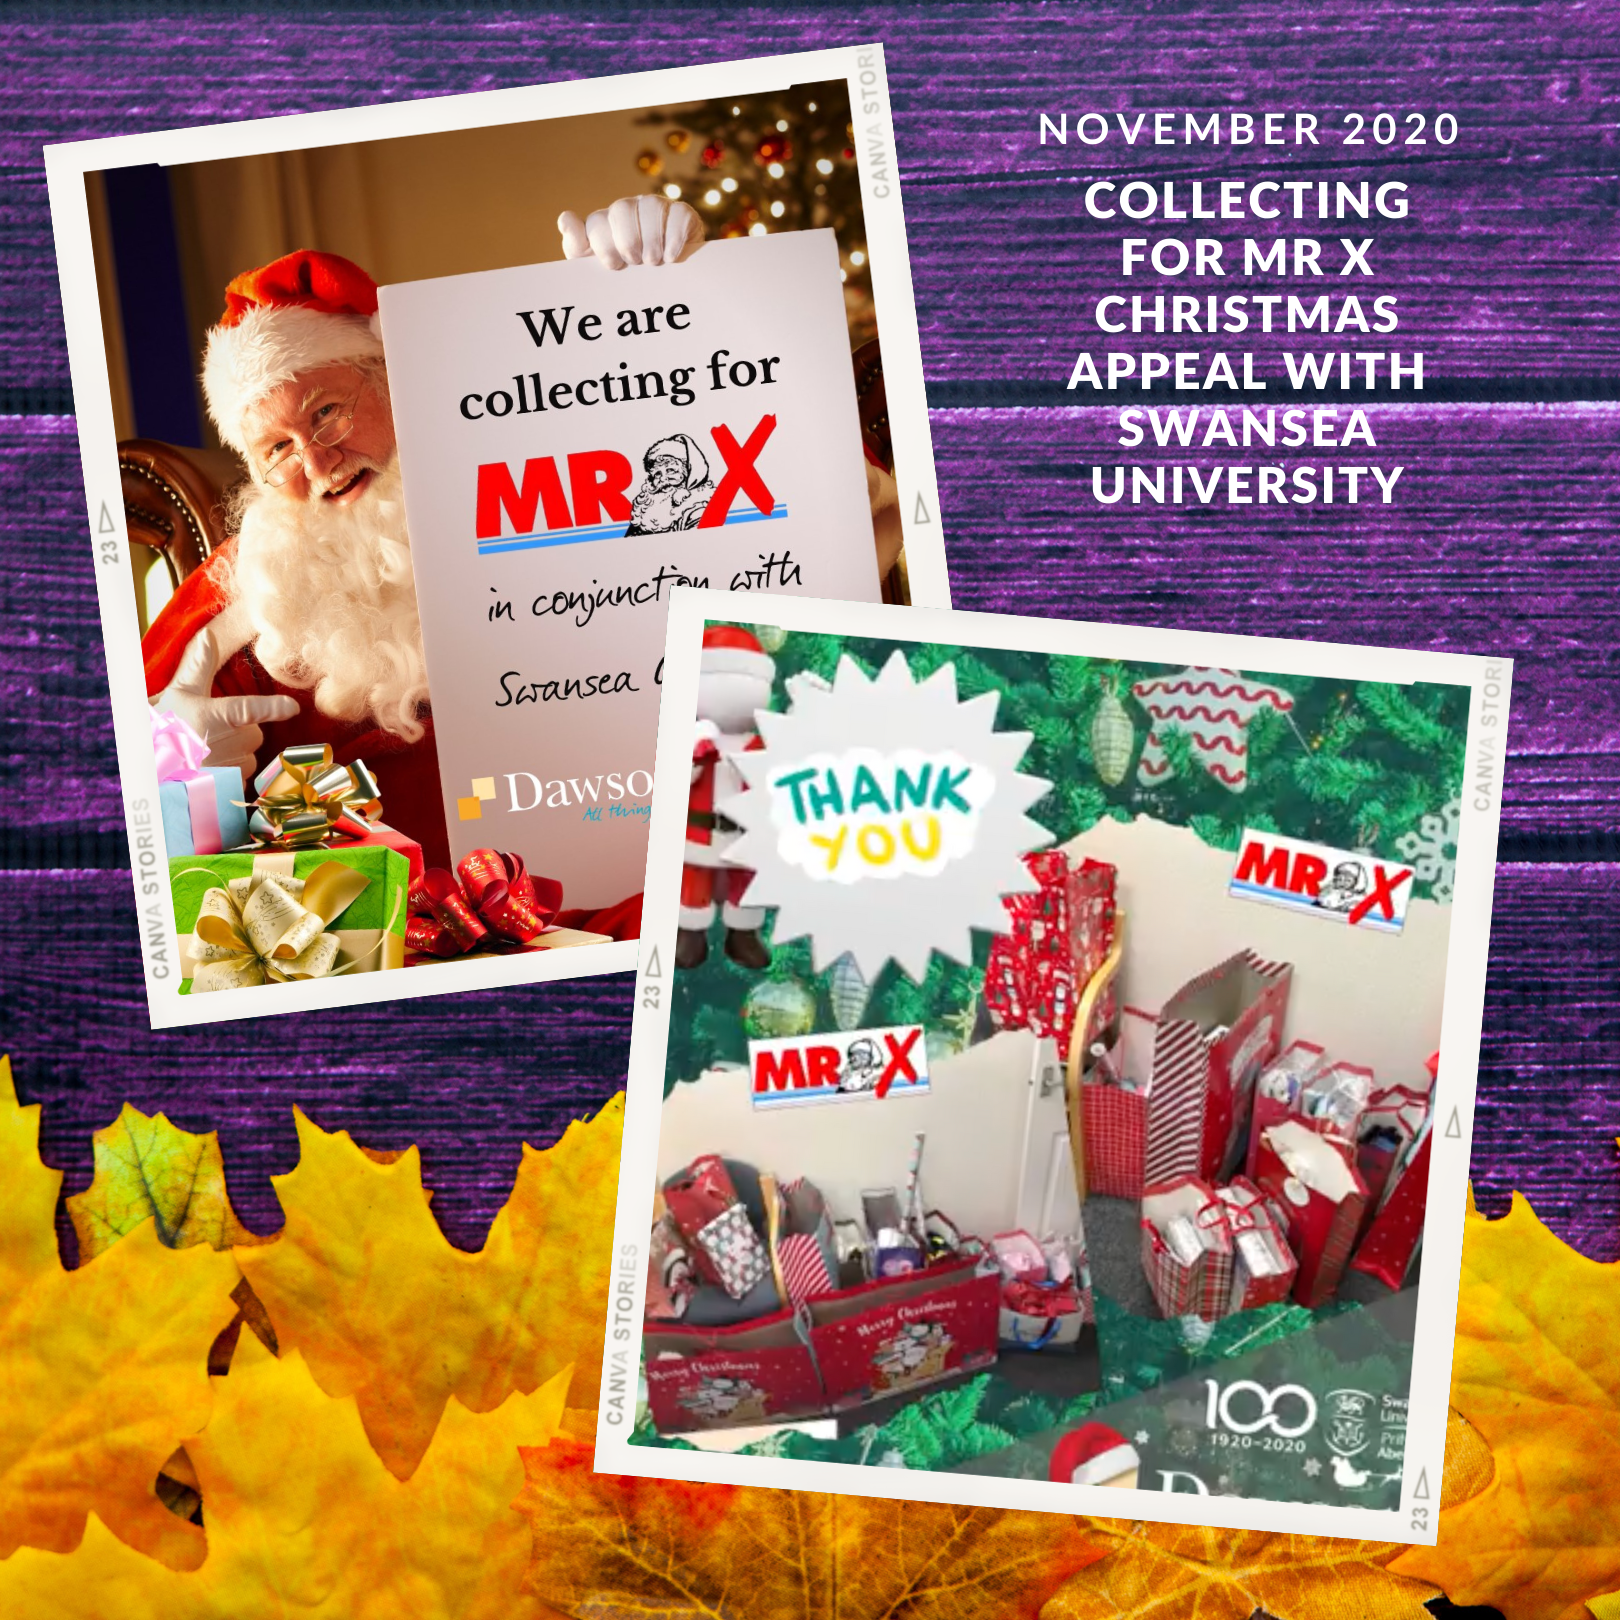 Dawsons collecting for the Mr X Christmas Appeal with Swansea University